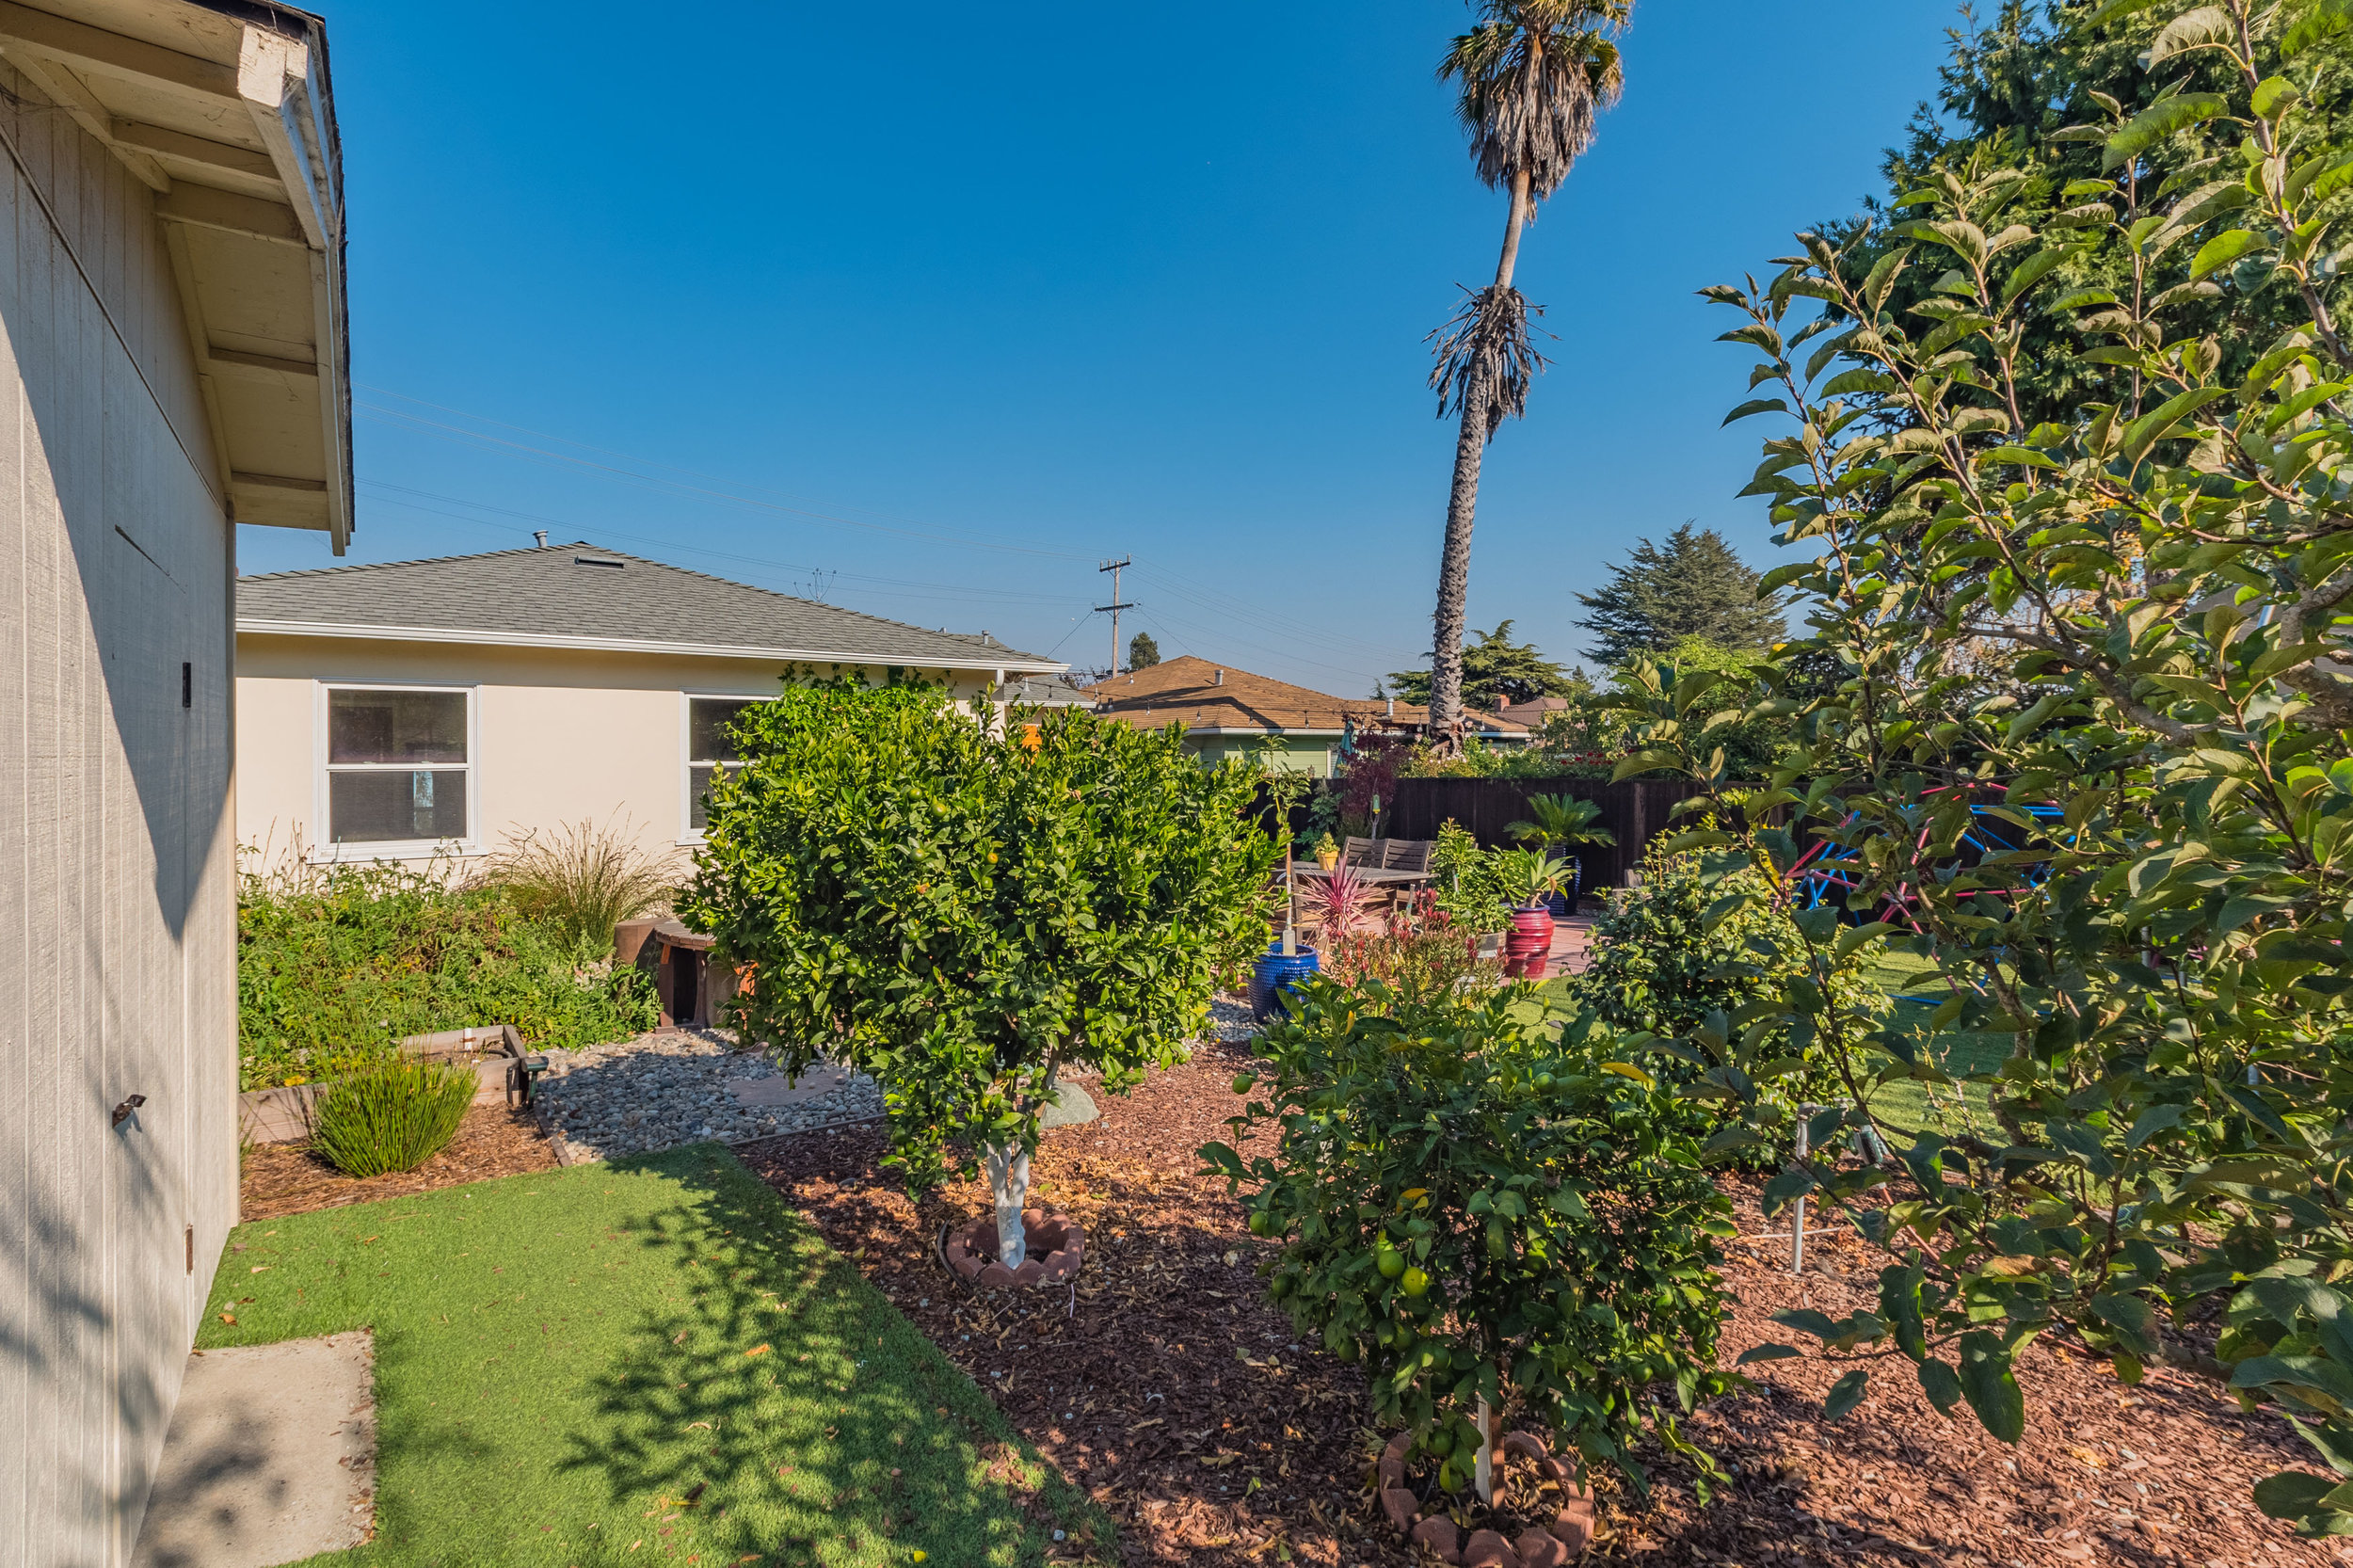 For sale in Santa Cruz - Turnkey home on the Westside.  Three bedrooms, two bathrooms and a huge backyard this home has it all!  Also located in the Westlake school district.